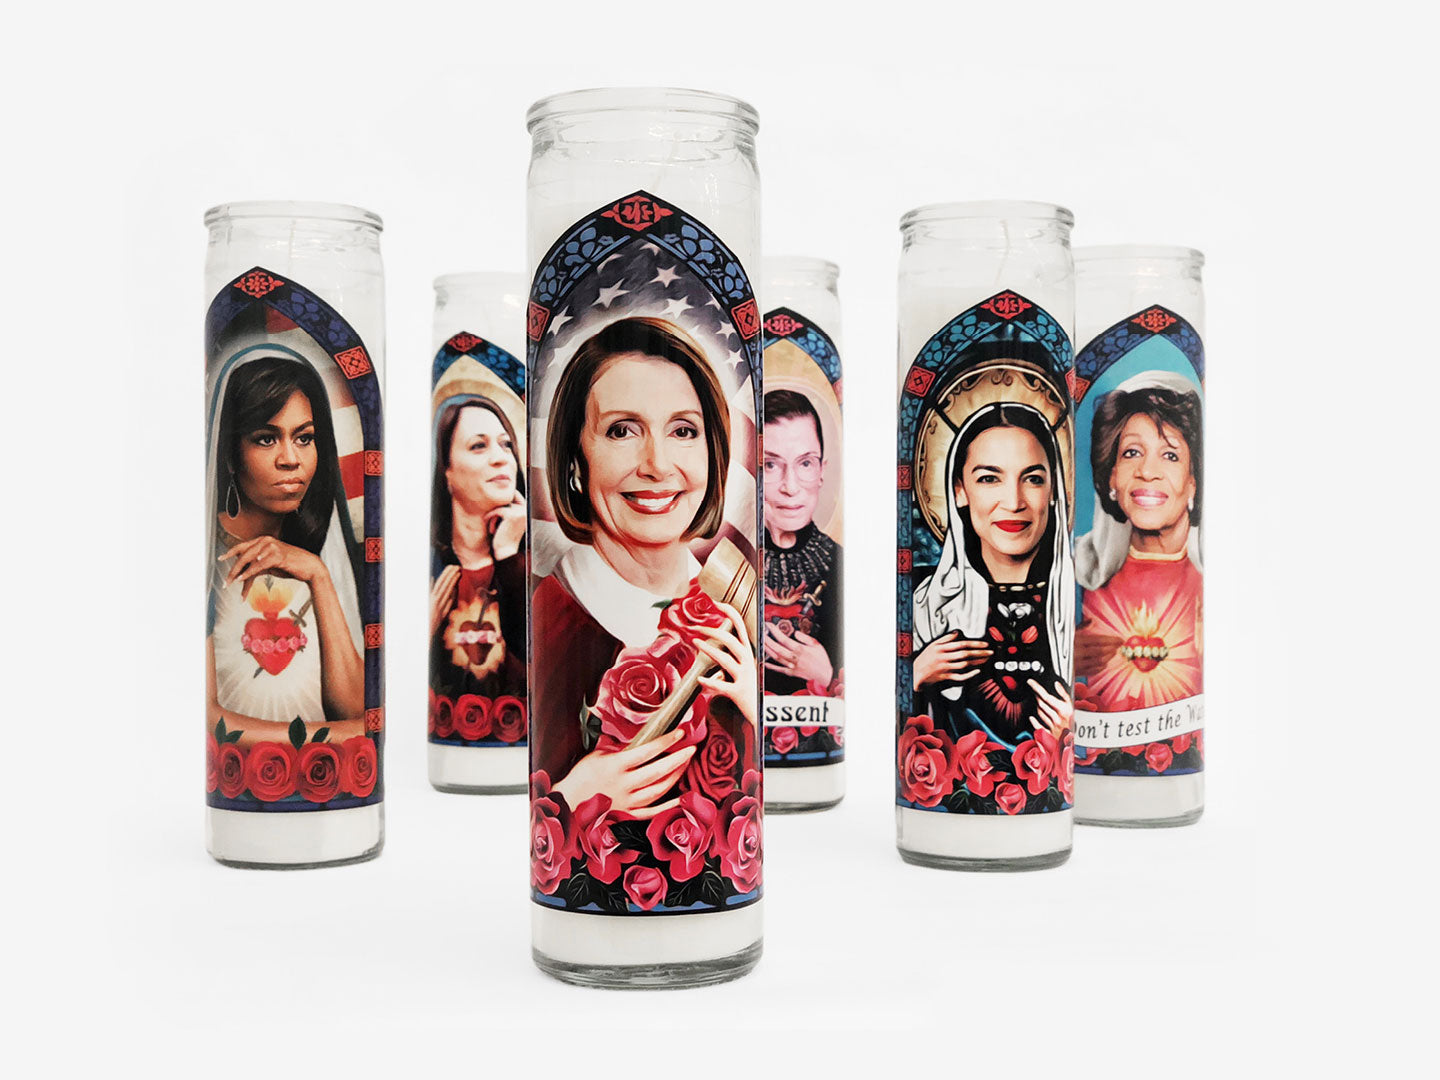 Prayer Candle Patron Saint of Dissent Ruth Bader Ginsberg